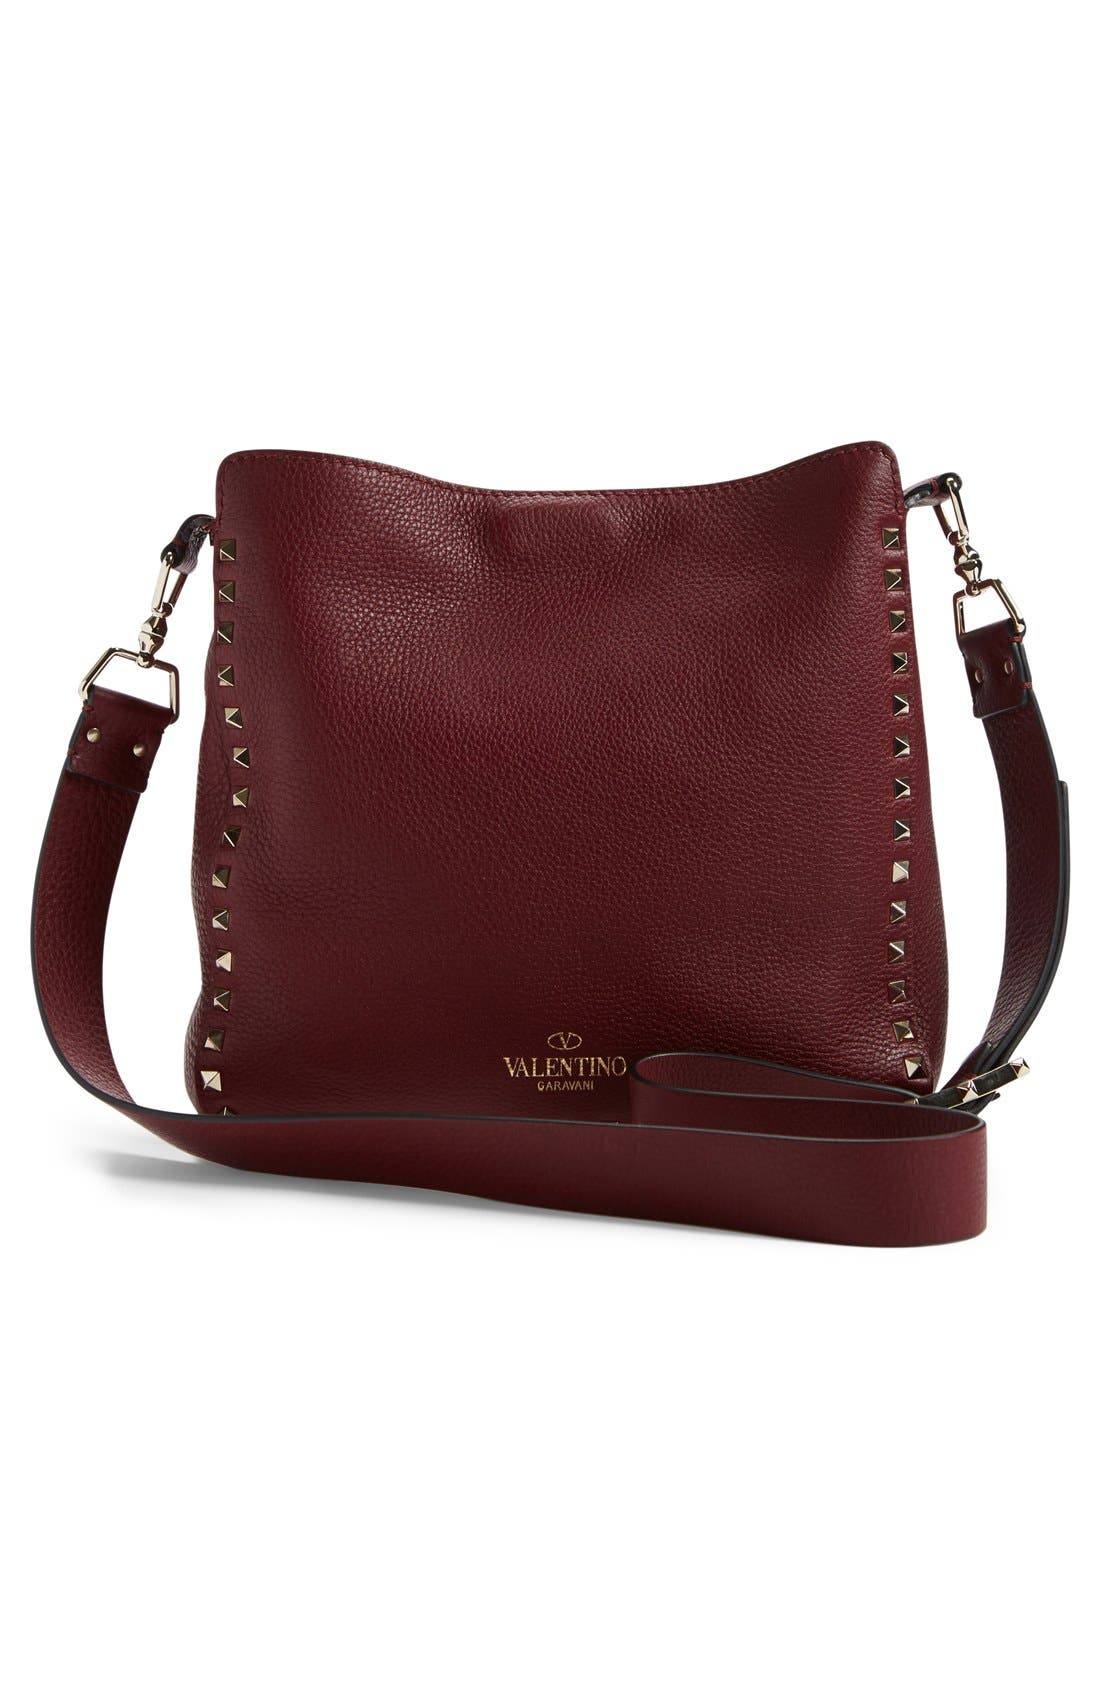 Alternate Image 2  - Valentino 'Small Rockstud' Leather Hobo Bag